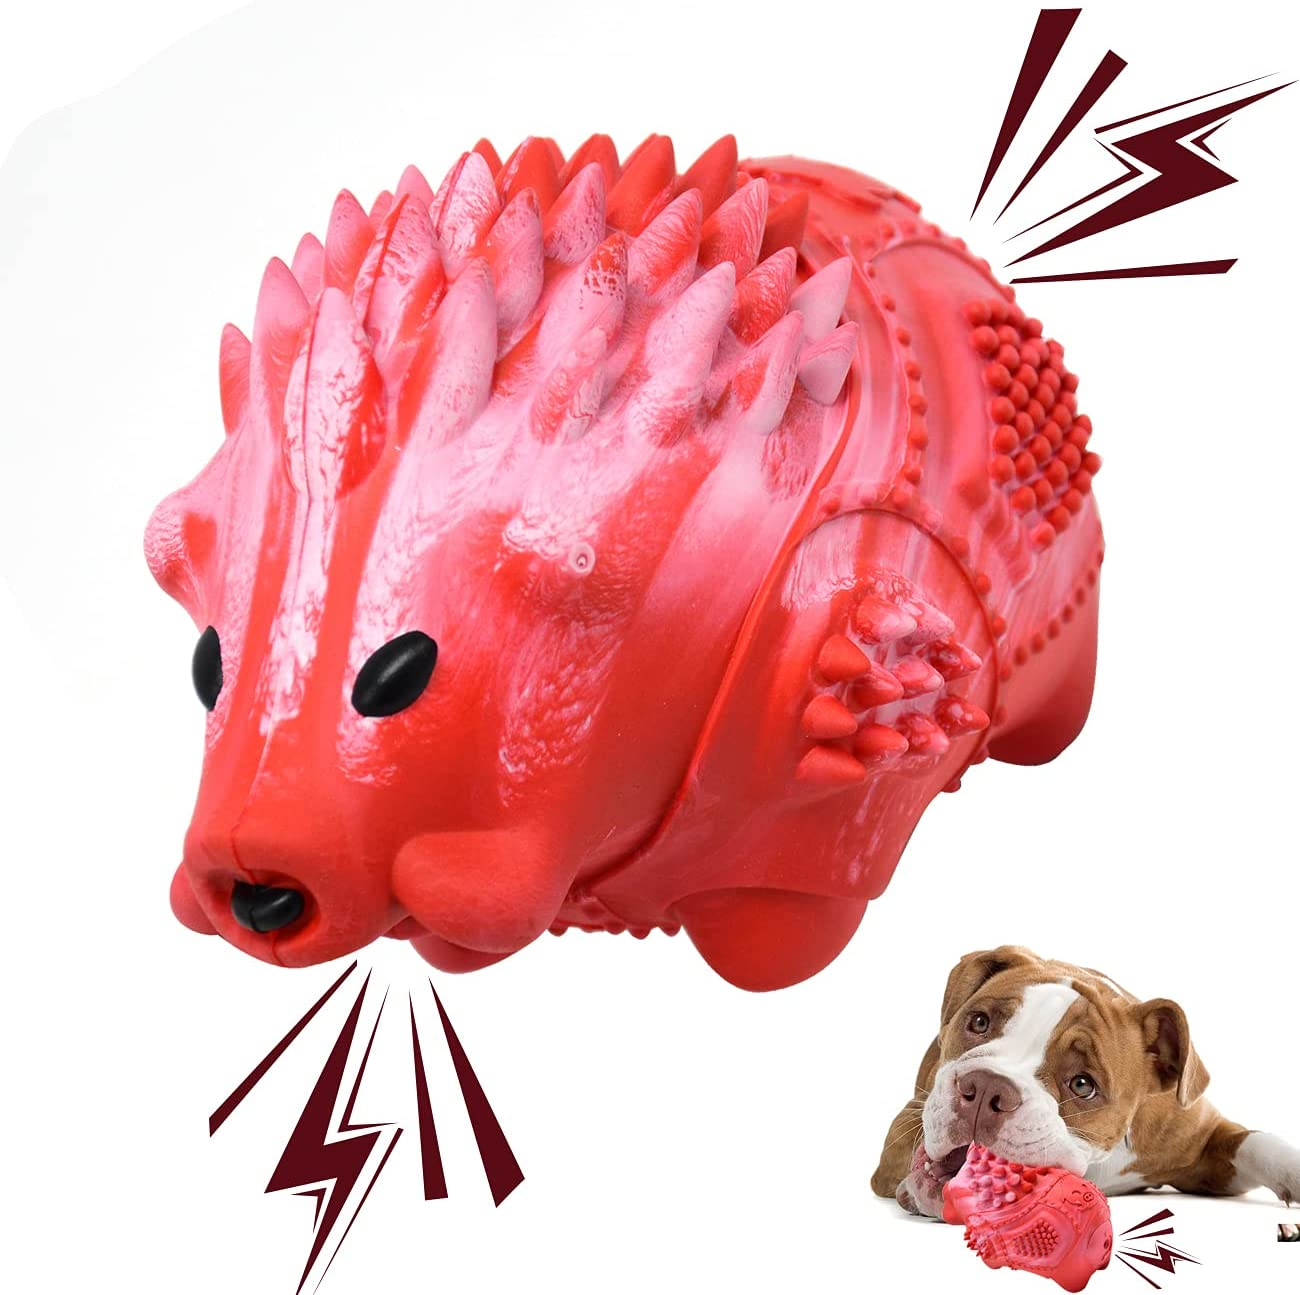 Dog Chew Toy Squeaky Toys Max 47% 2021 autumn and winter new OFF Aggressive Toug for Chewers